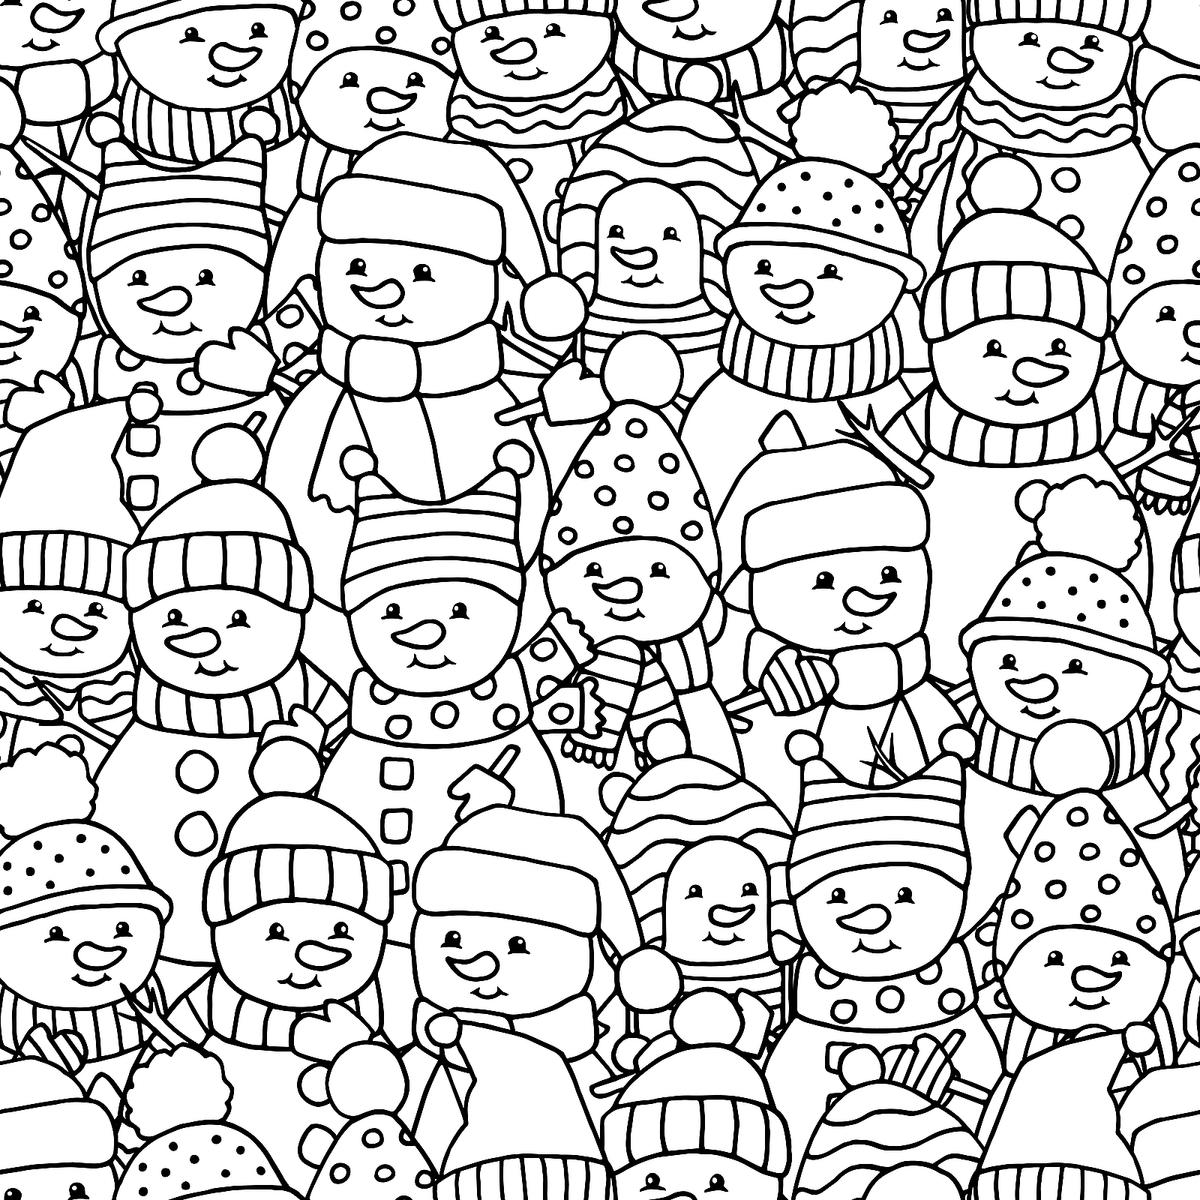 Snowman Coloring Pages For Kids Amp Adults 10 Printable